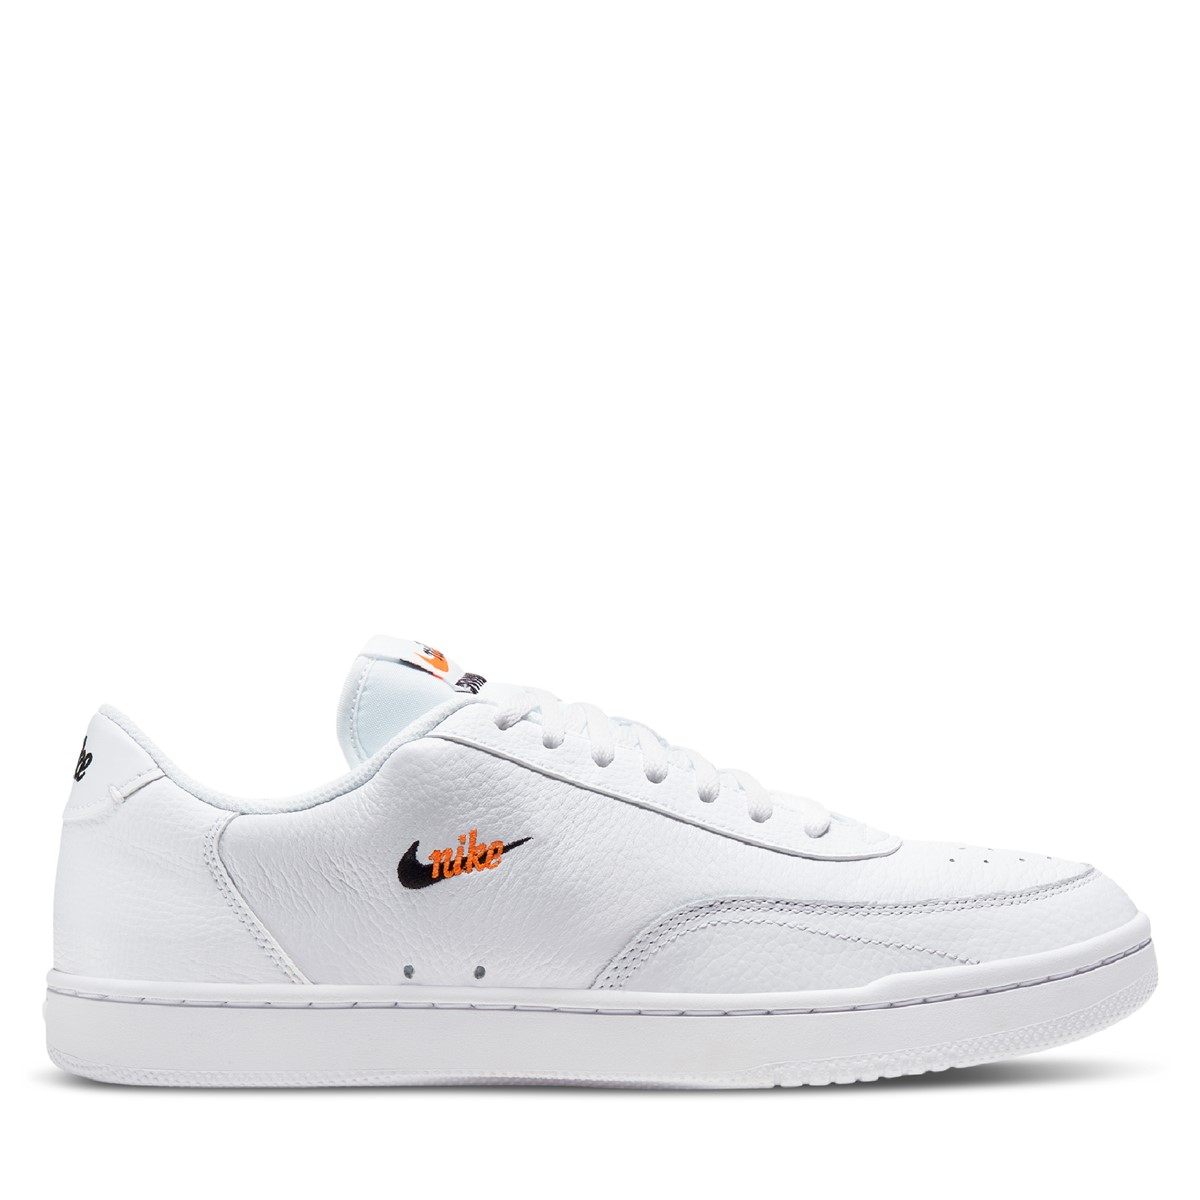 Men's Court Vintage Sneakers in White